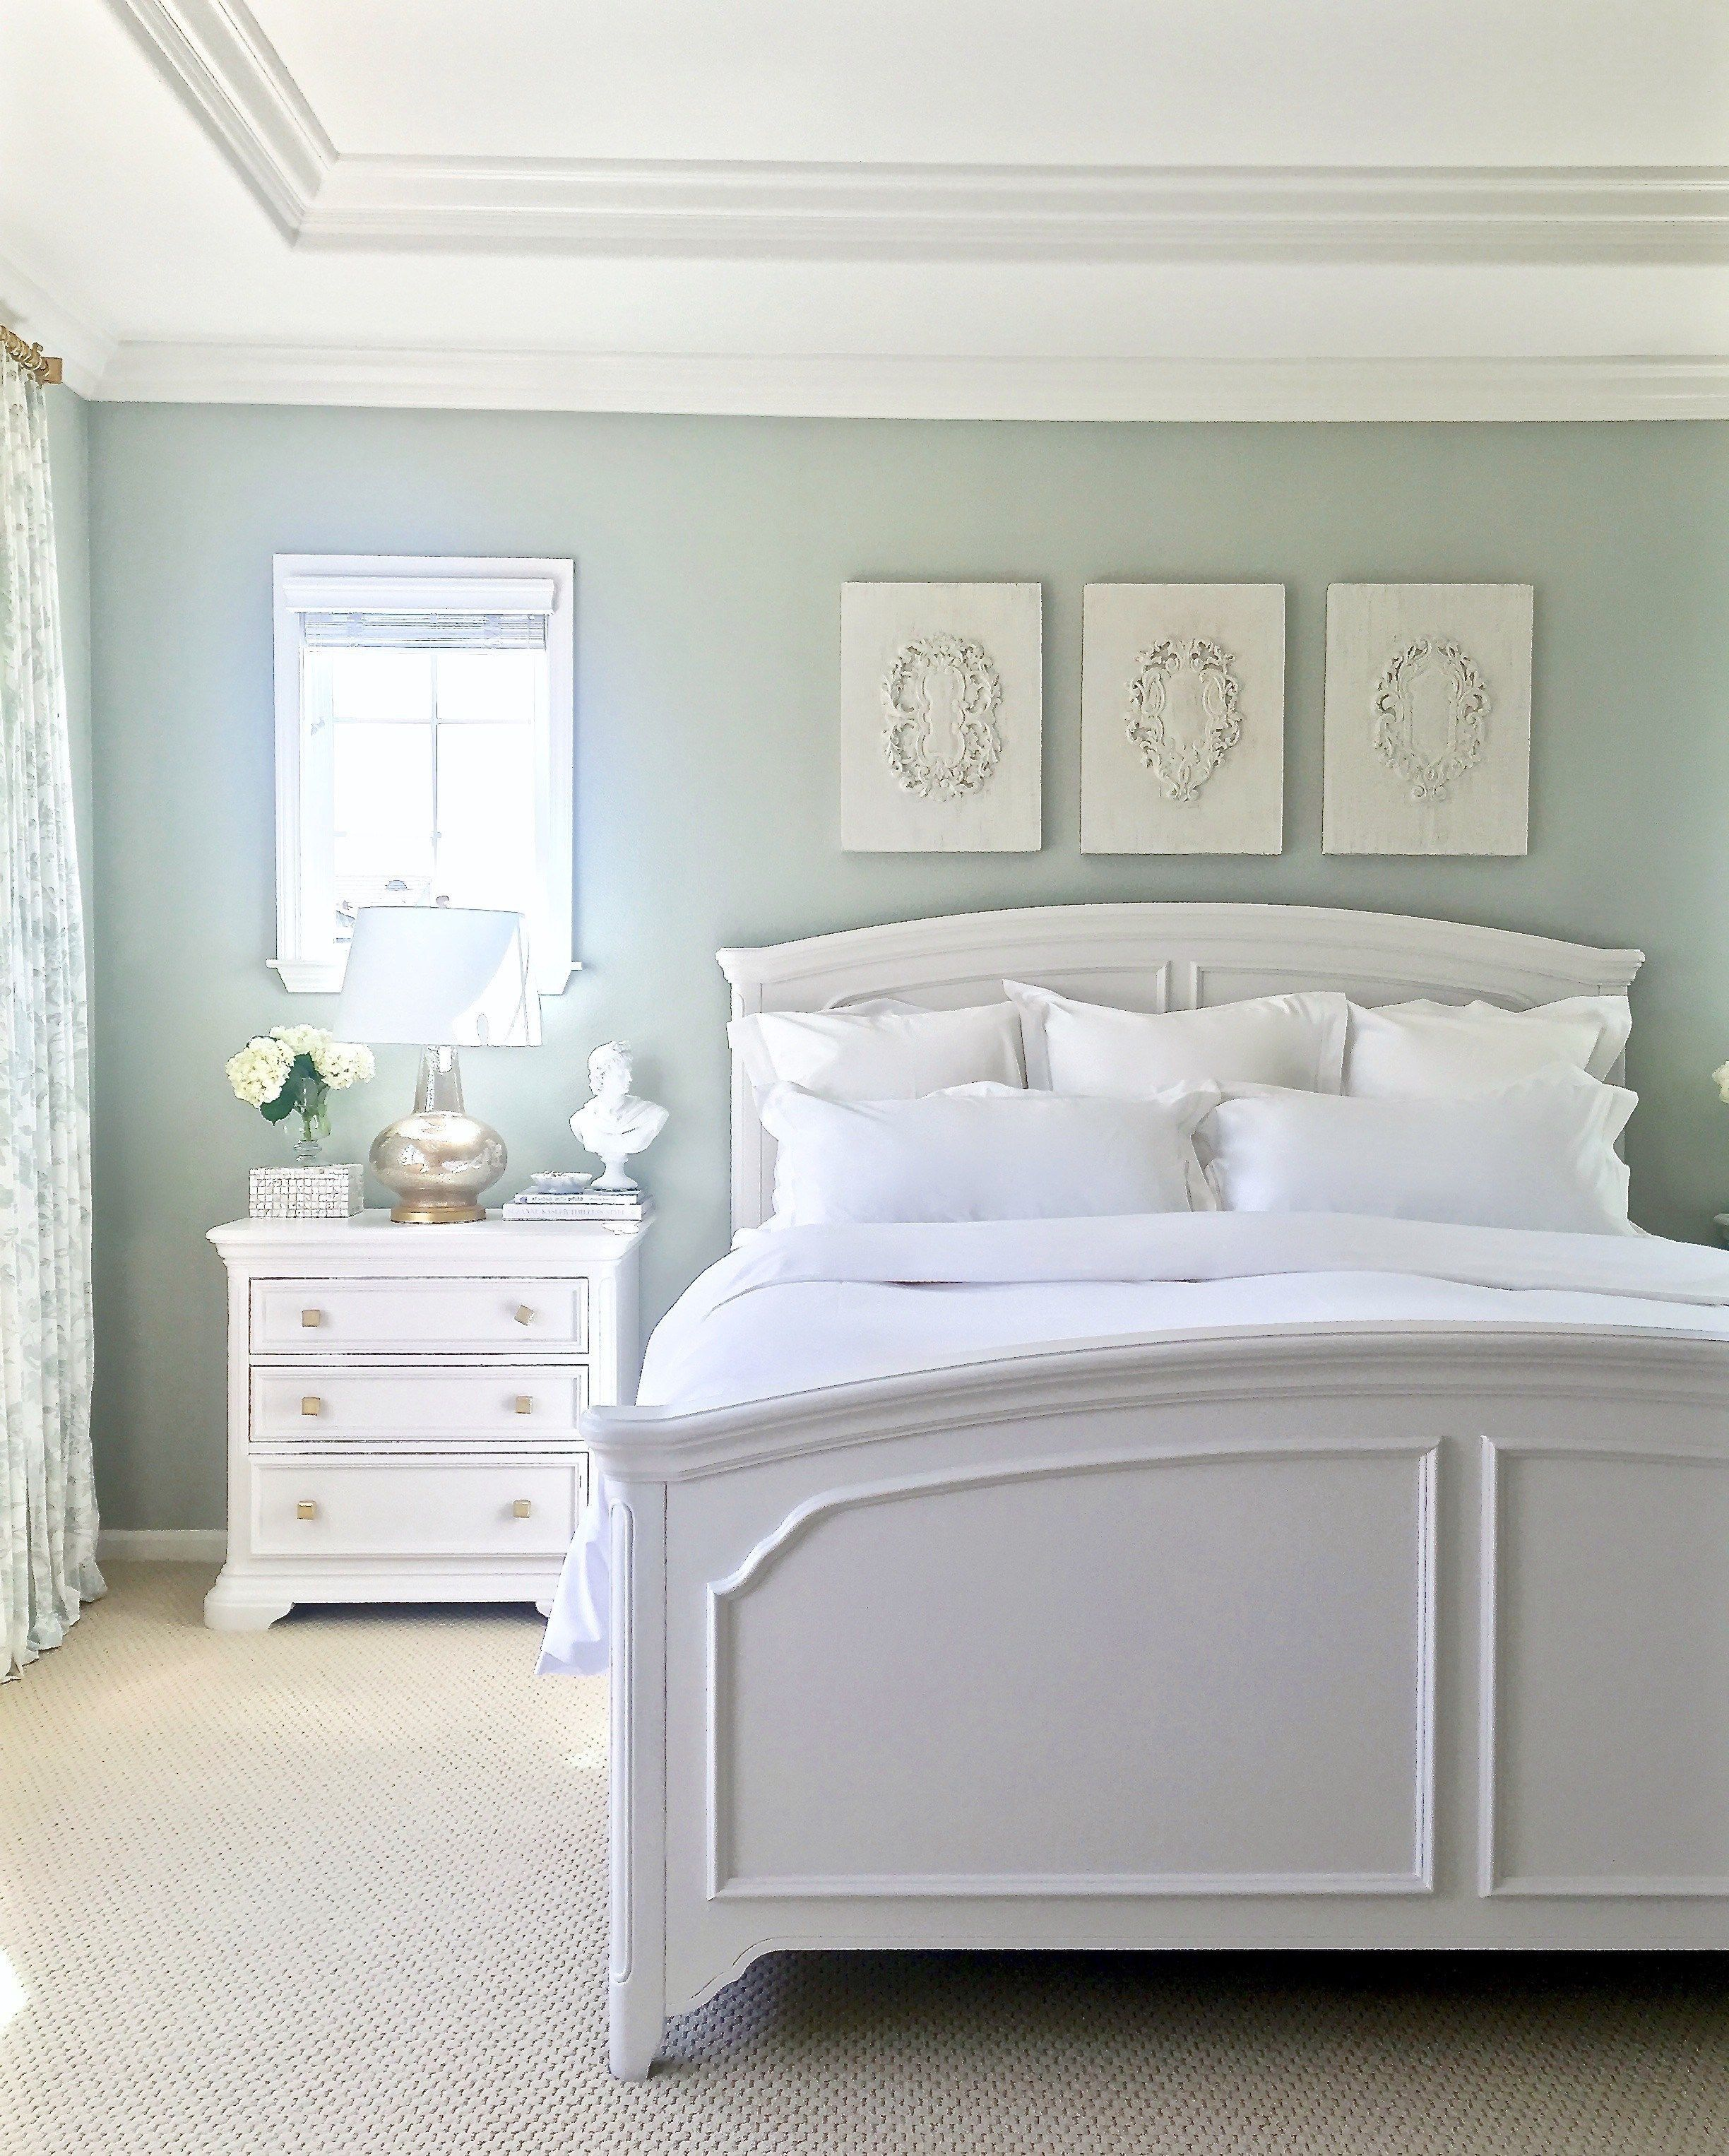 Light Green Paint Colors For Bedroom With White Furniture And Floor In 2020 White Wall Bedroom Bedroom Wall Colors Bedroom Furniture Sets